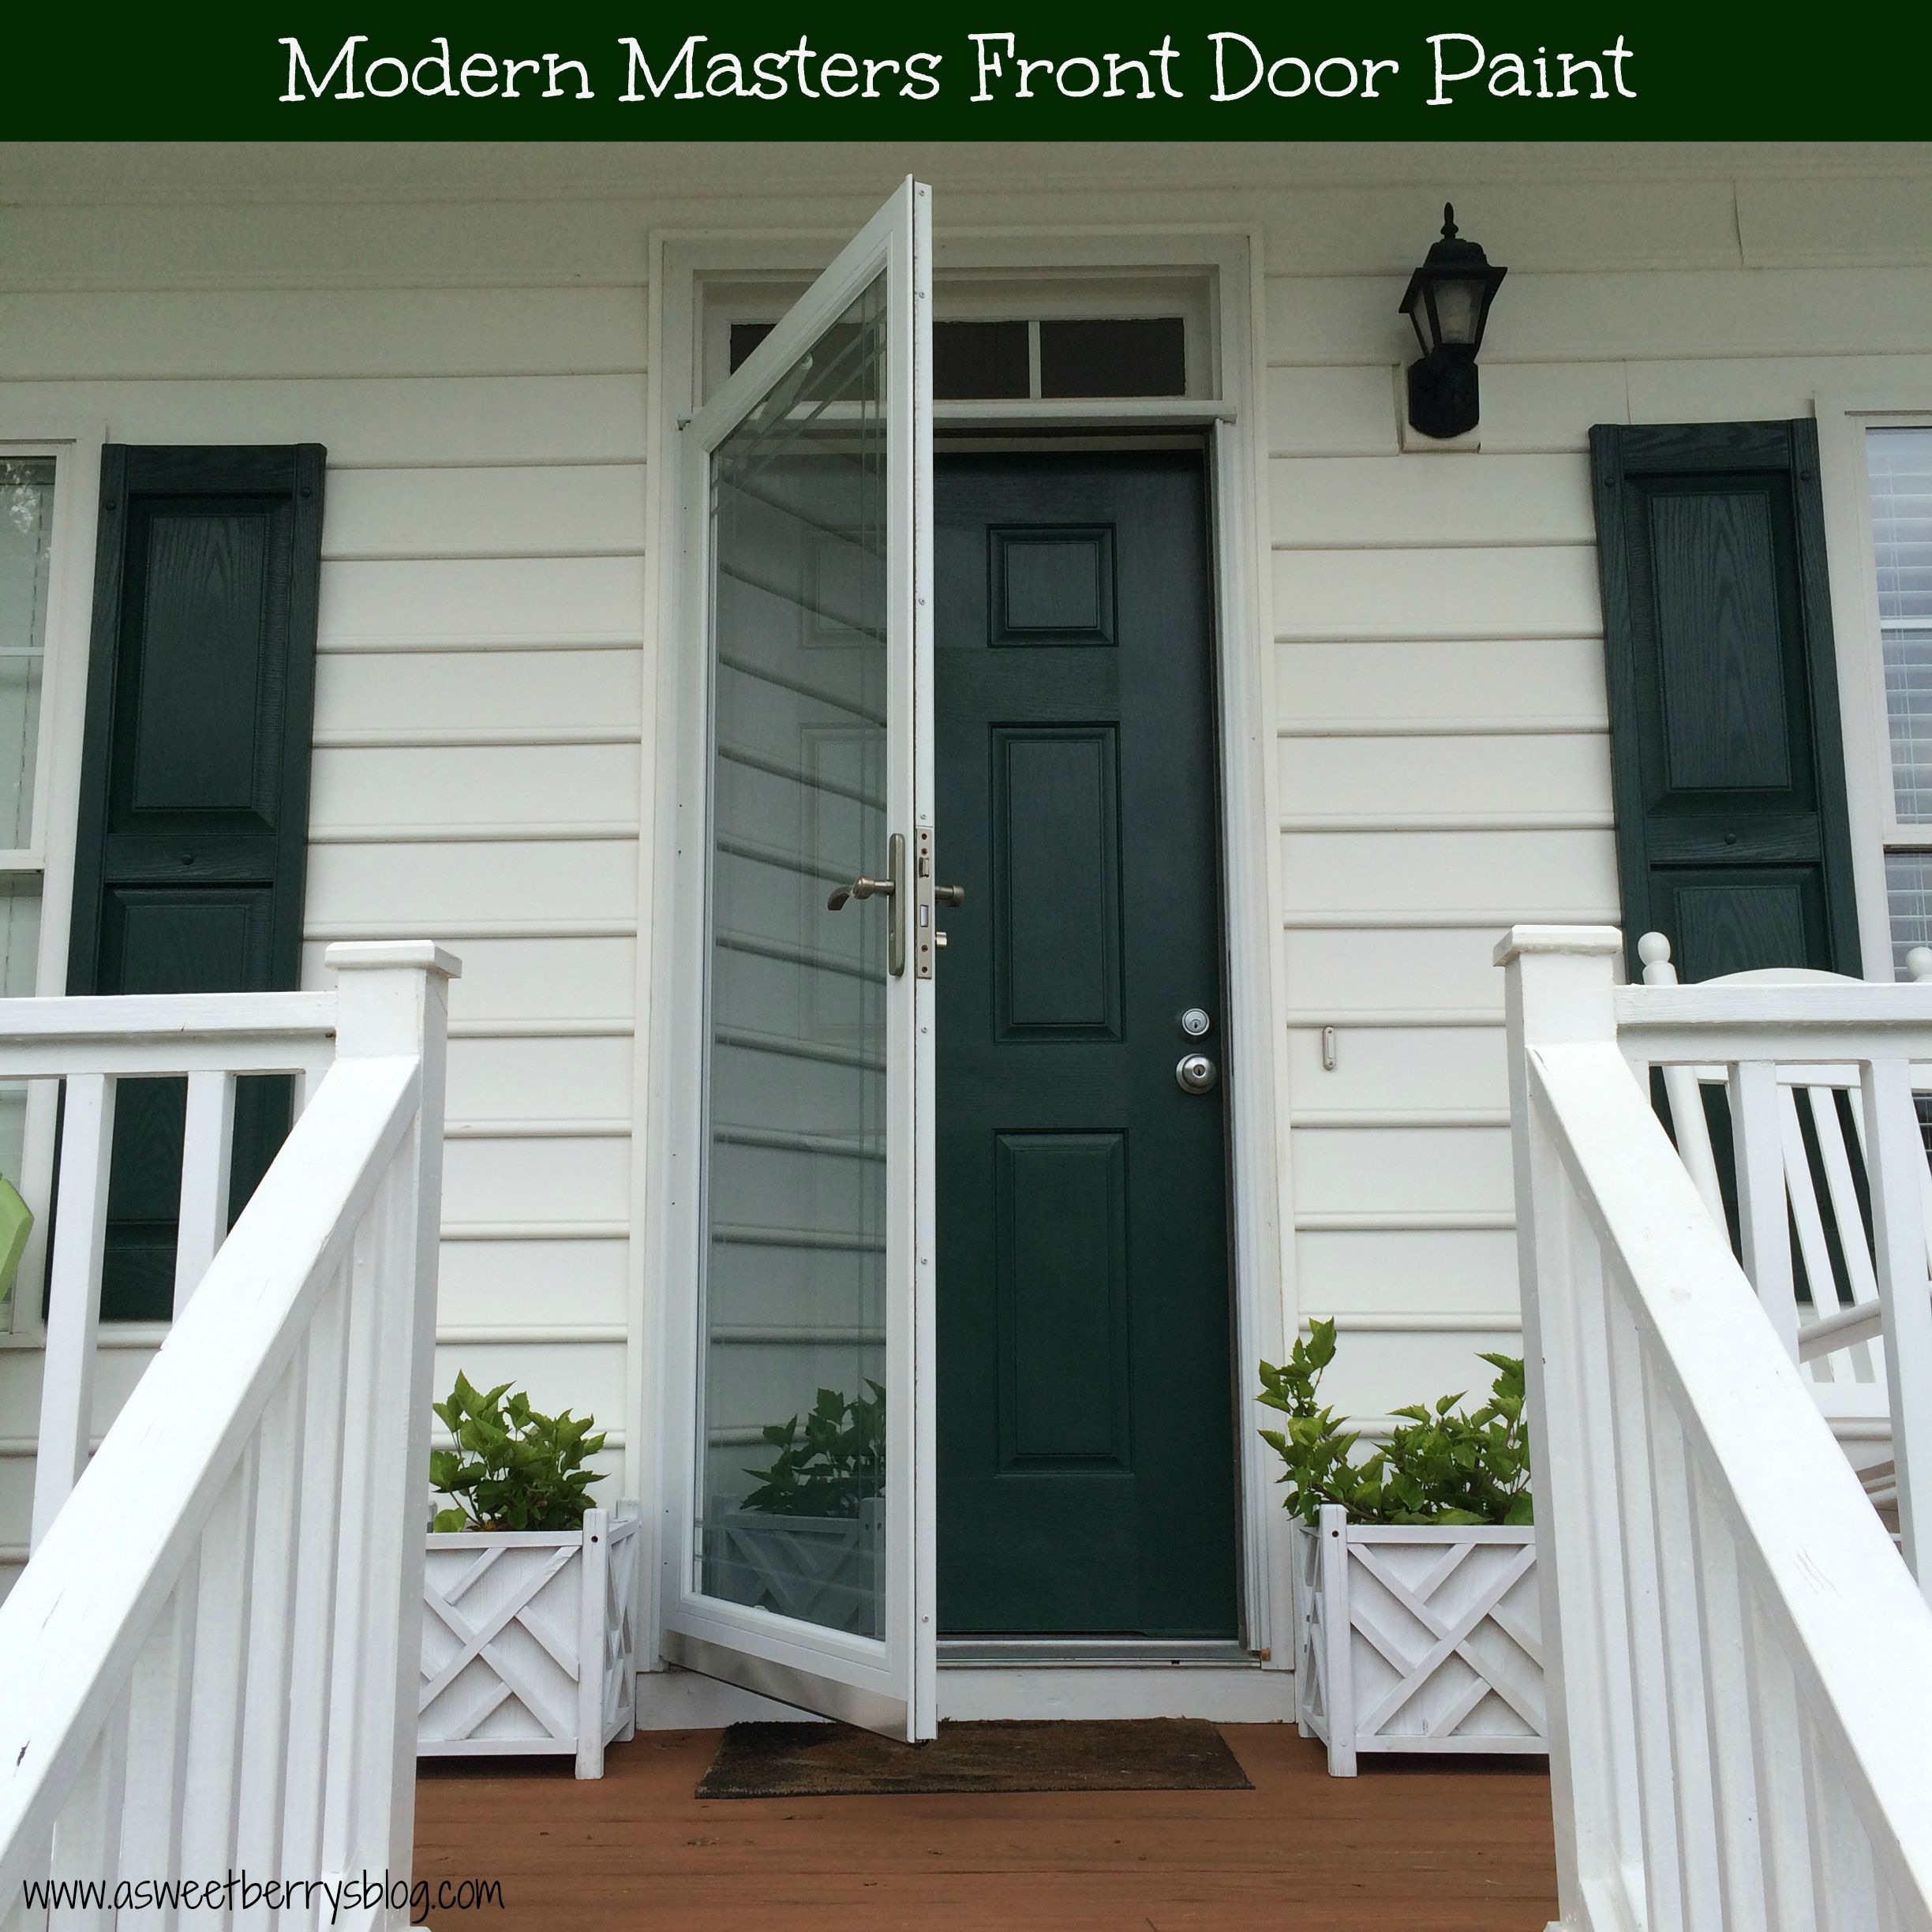 Modern masters front door paint a sweet berrys blog i can not say enough good things about modern masters front door paint i love that a little bit goes a long way one jar was enough to cover my front door rubansaba